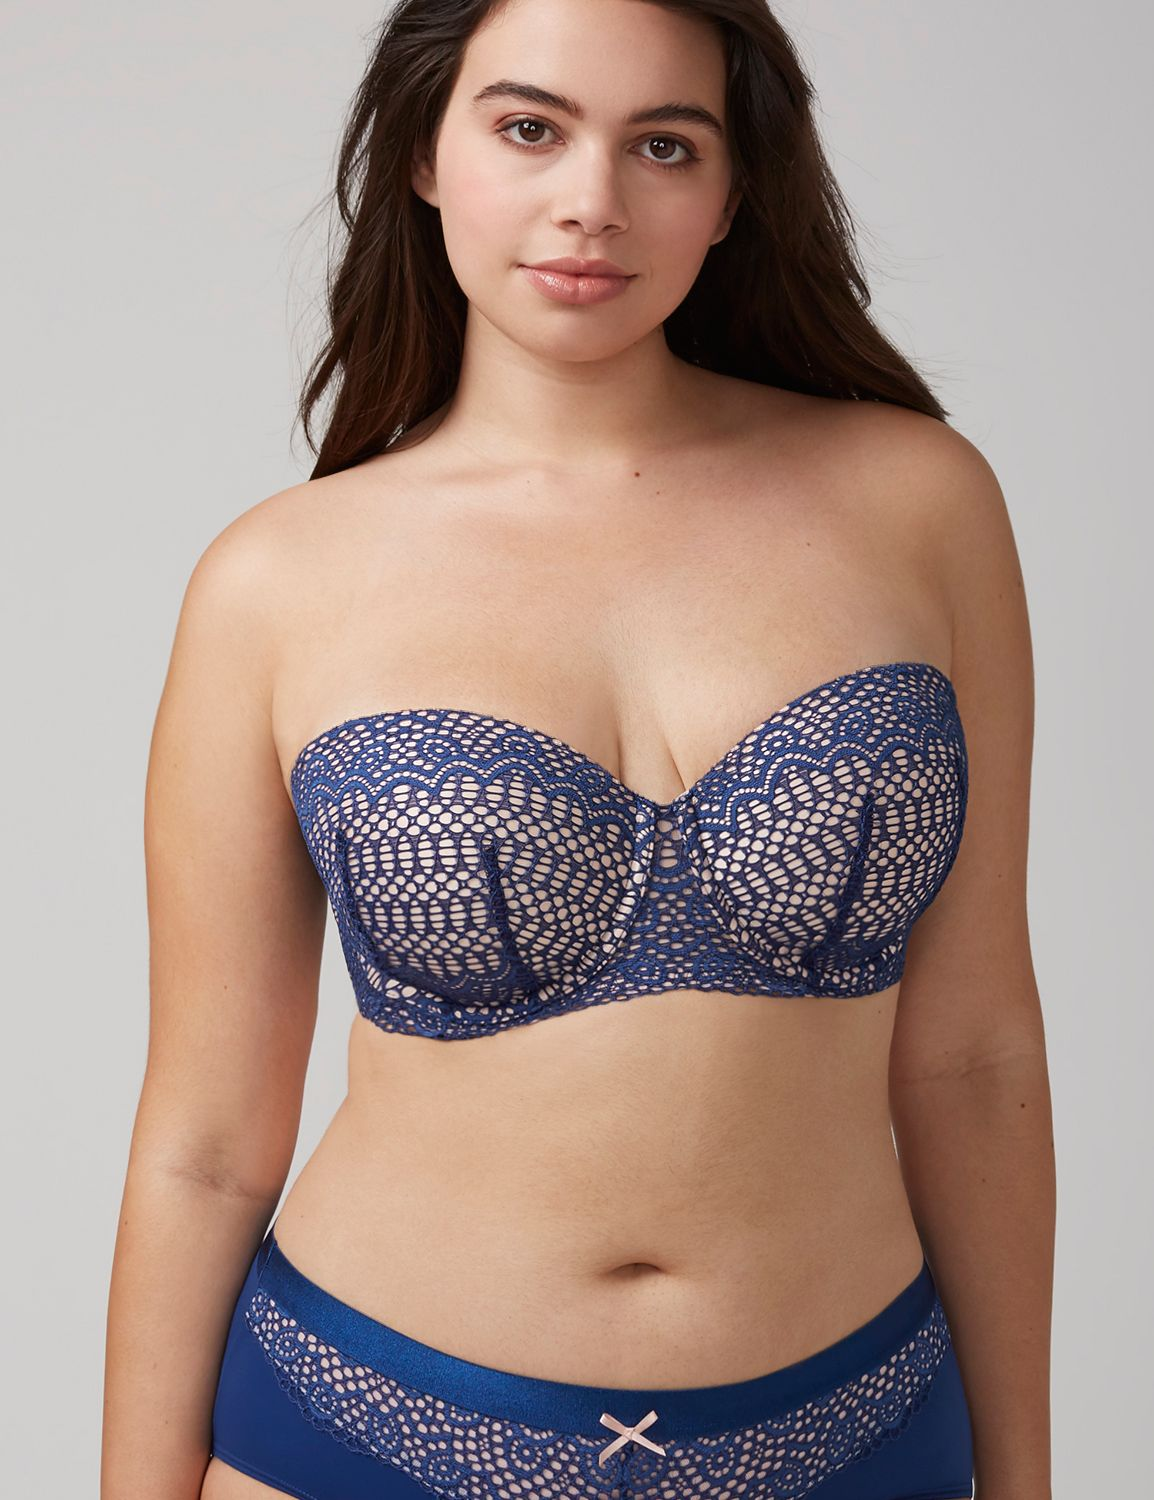 Lane Bryant Womens Lightweight Multi-Way Strapless Bra 36C Estate Blue